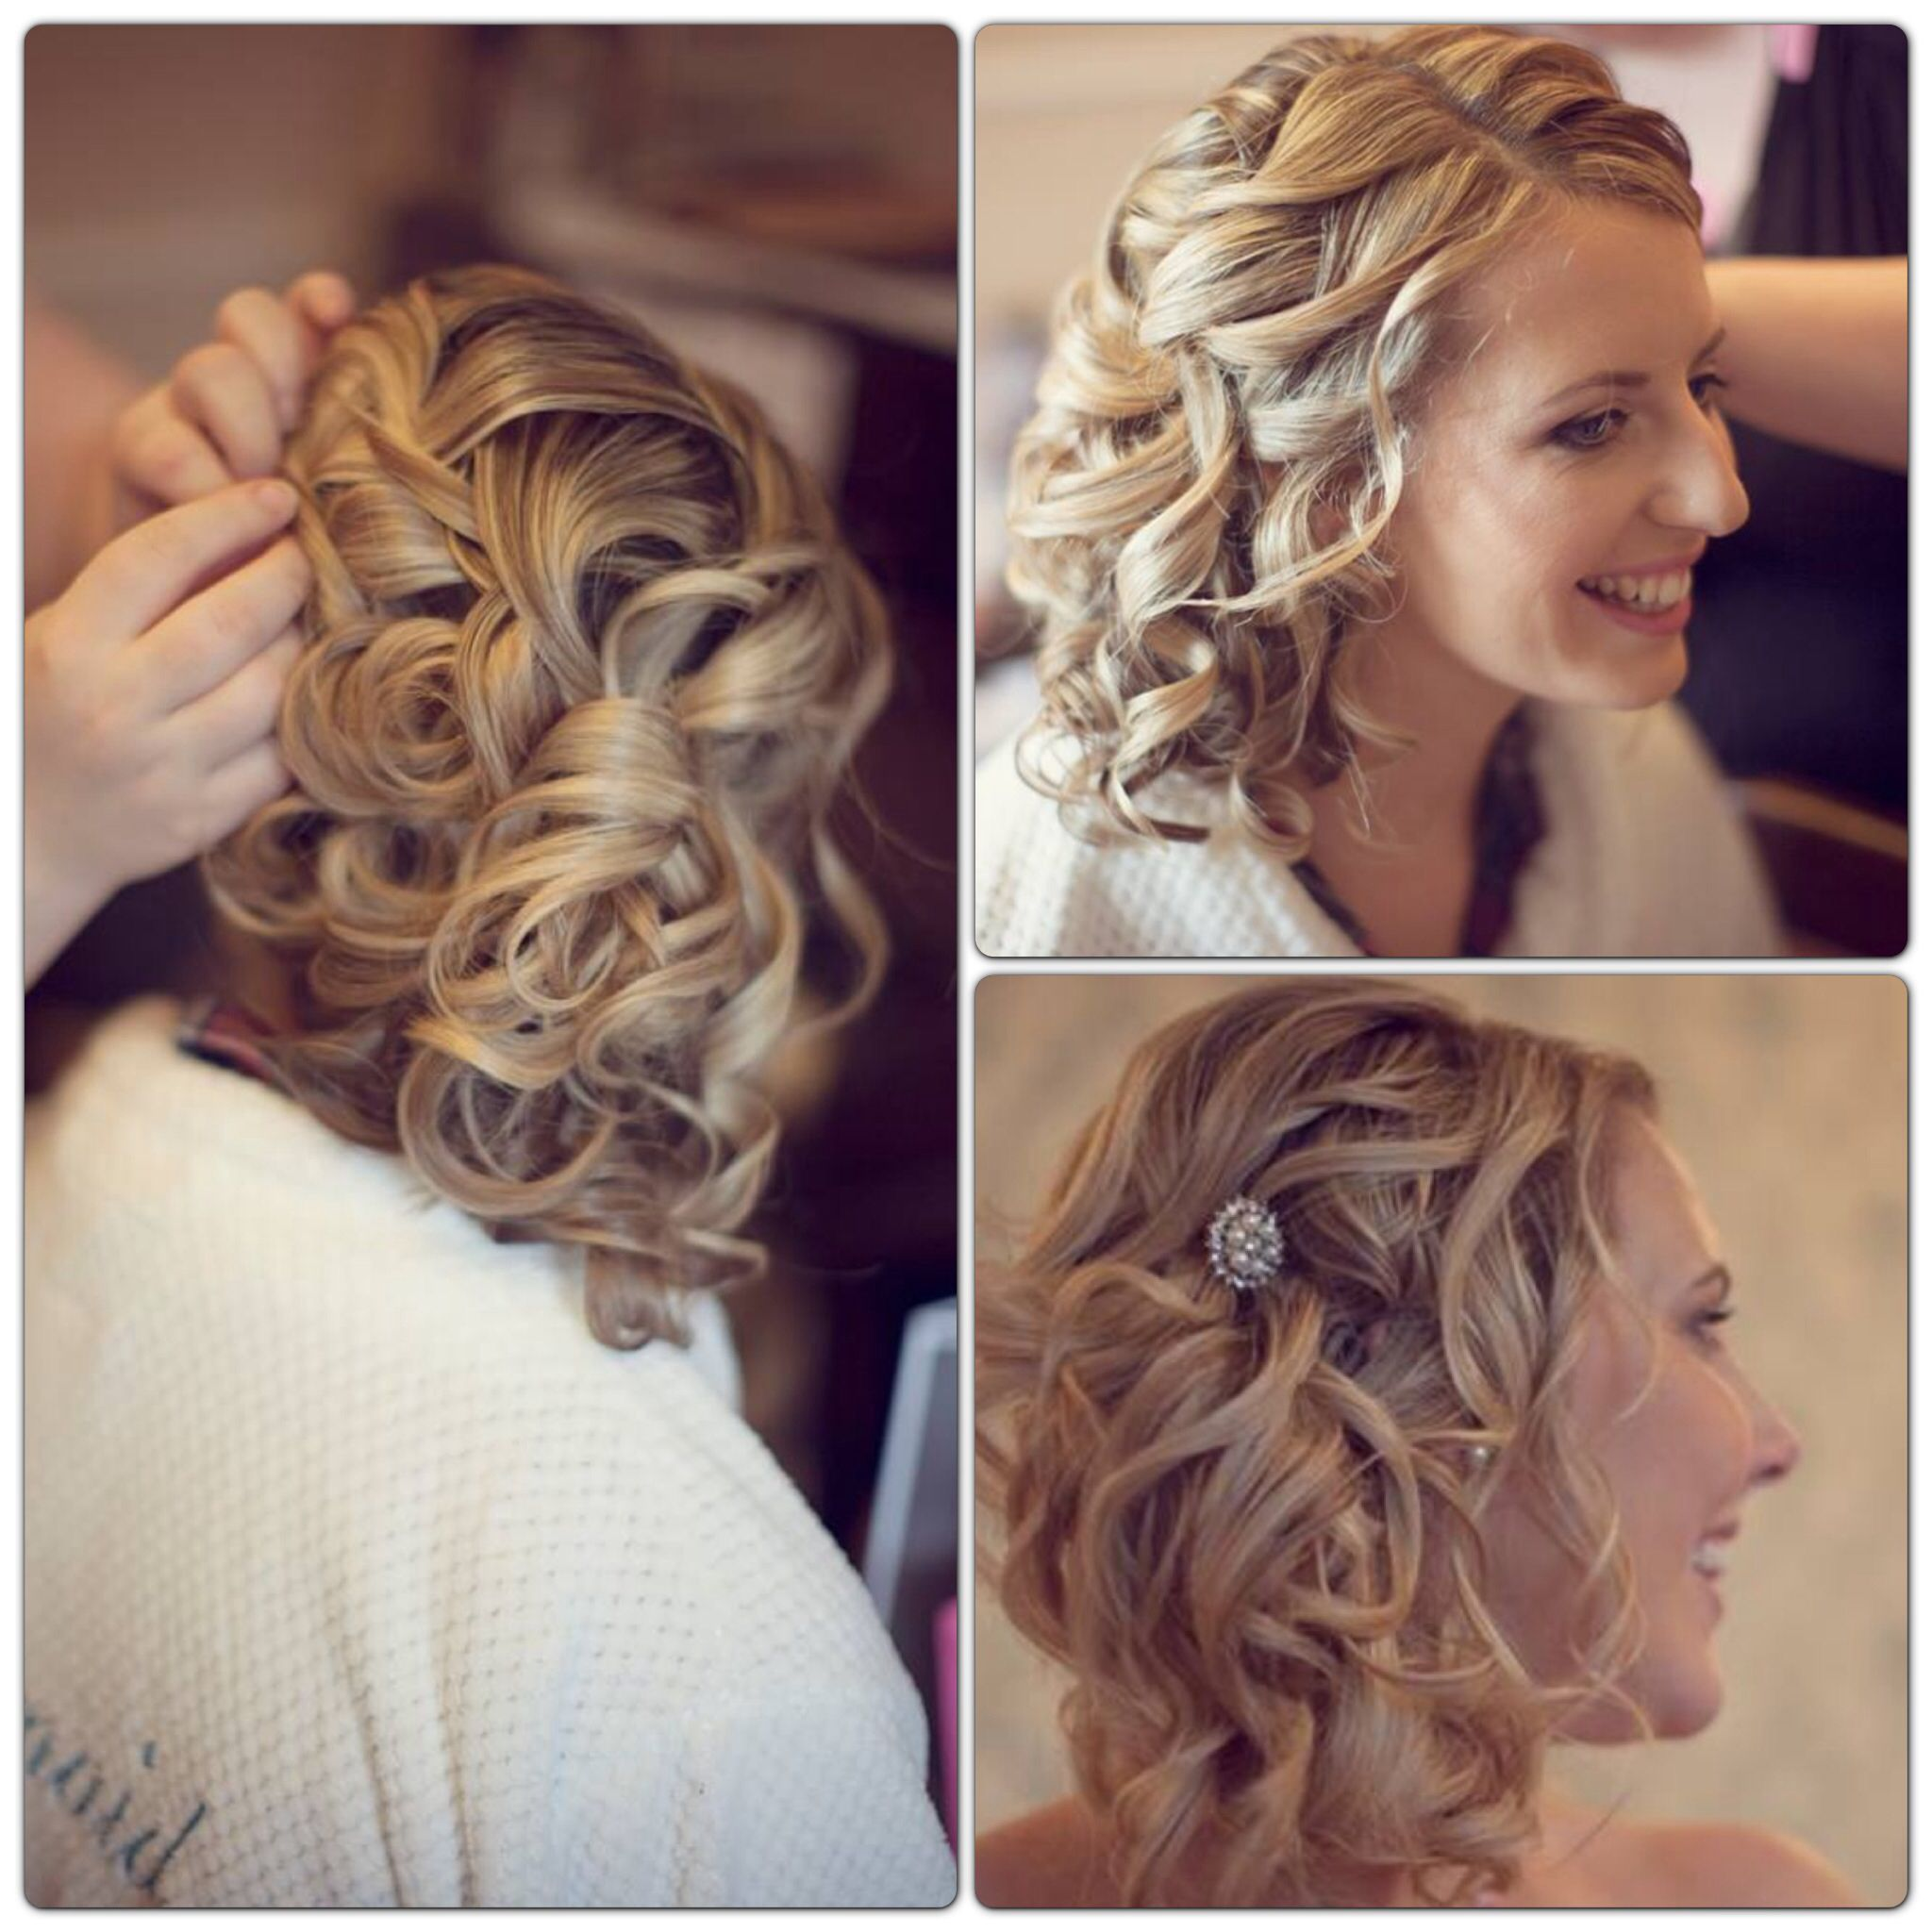 Wedding Hair Loose Up Style: Wedding Style, Side, Updo, Bridal, Up Style, Loose Curls